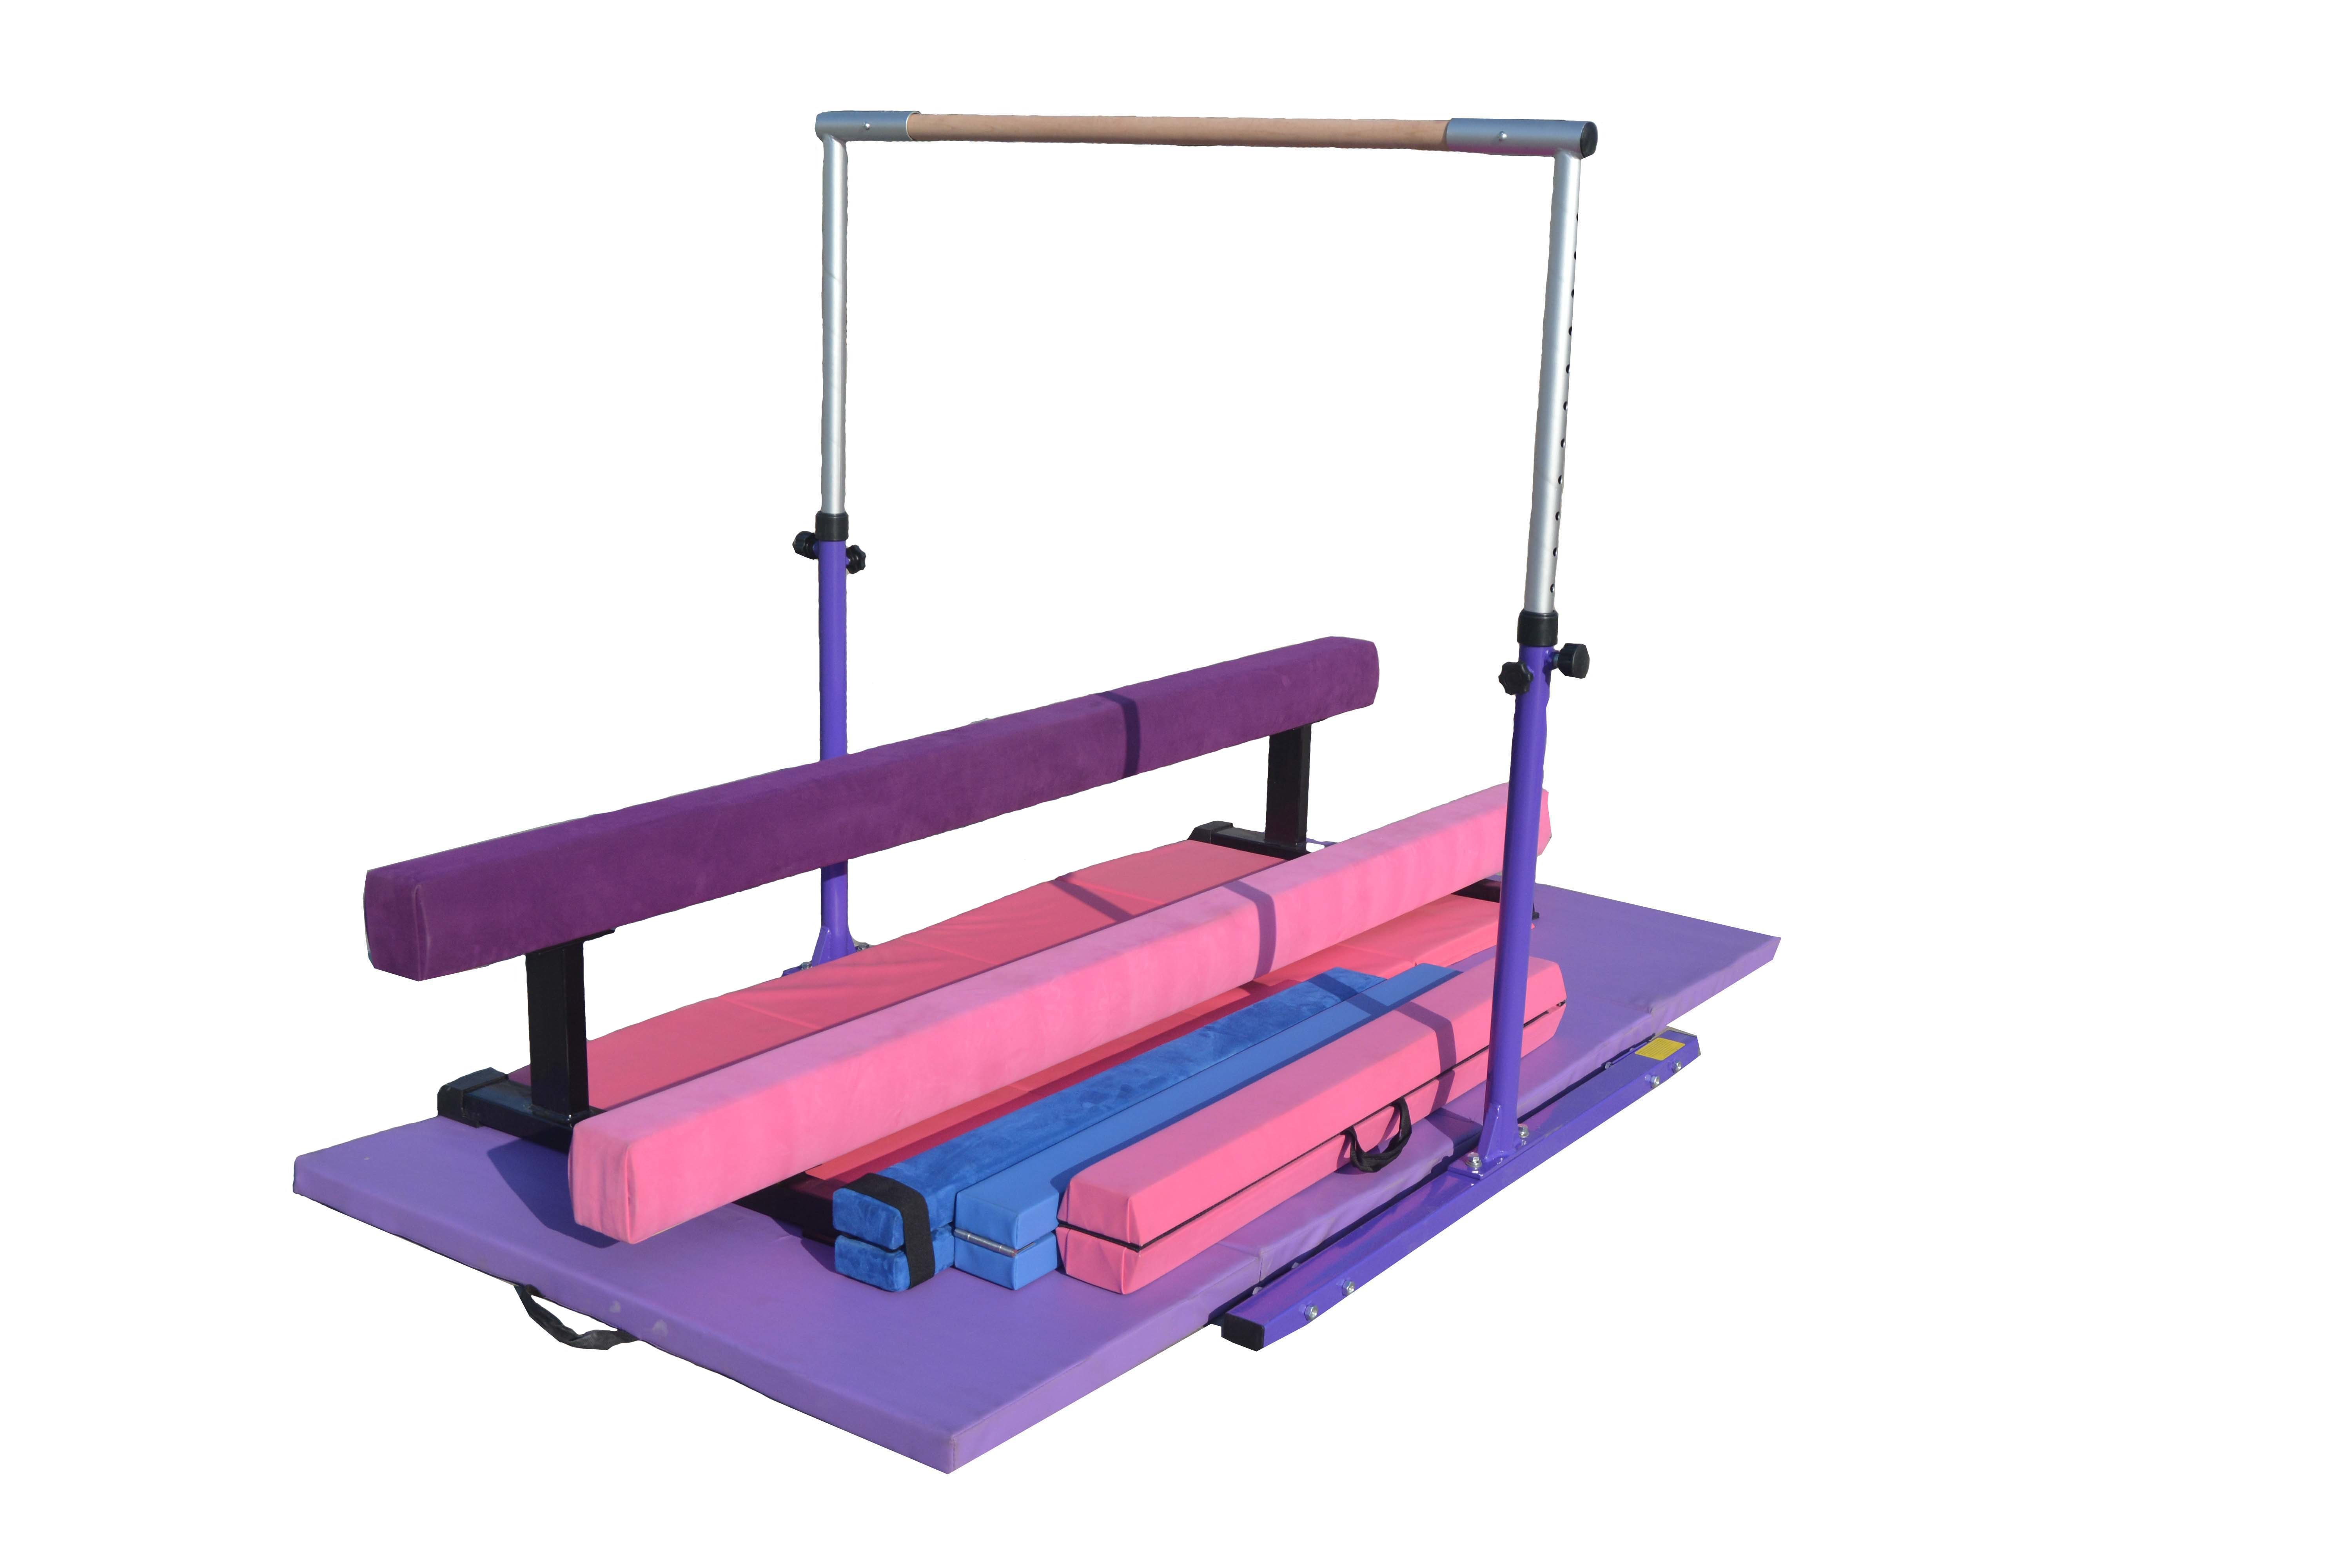 Gymnastics Equipment For Sale >> China Hottest Gymnastic Equipment Adjustable Gymnastic Bar